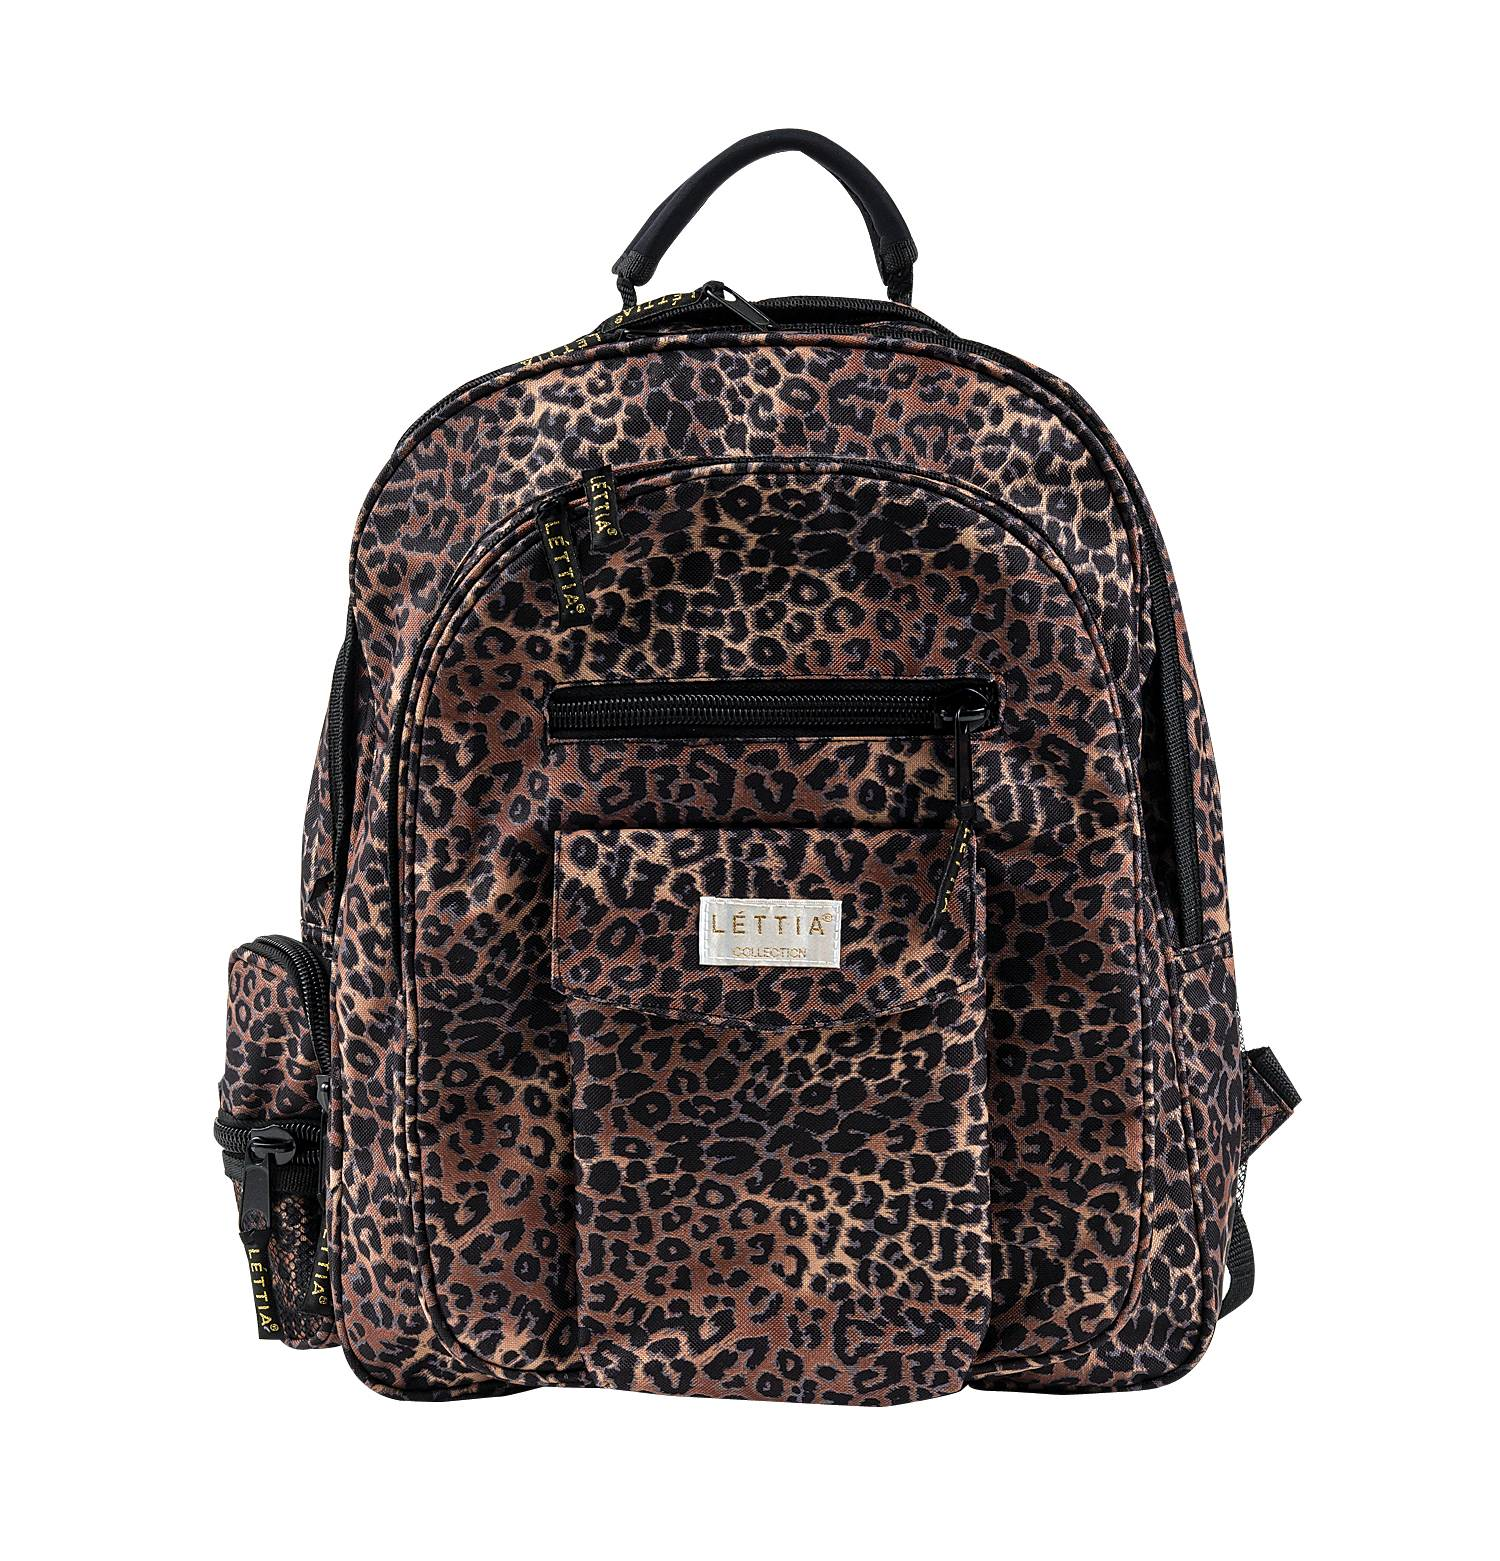 Lettia Print Back Pack